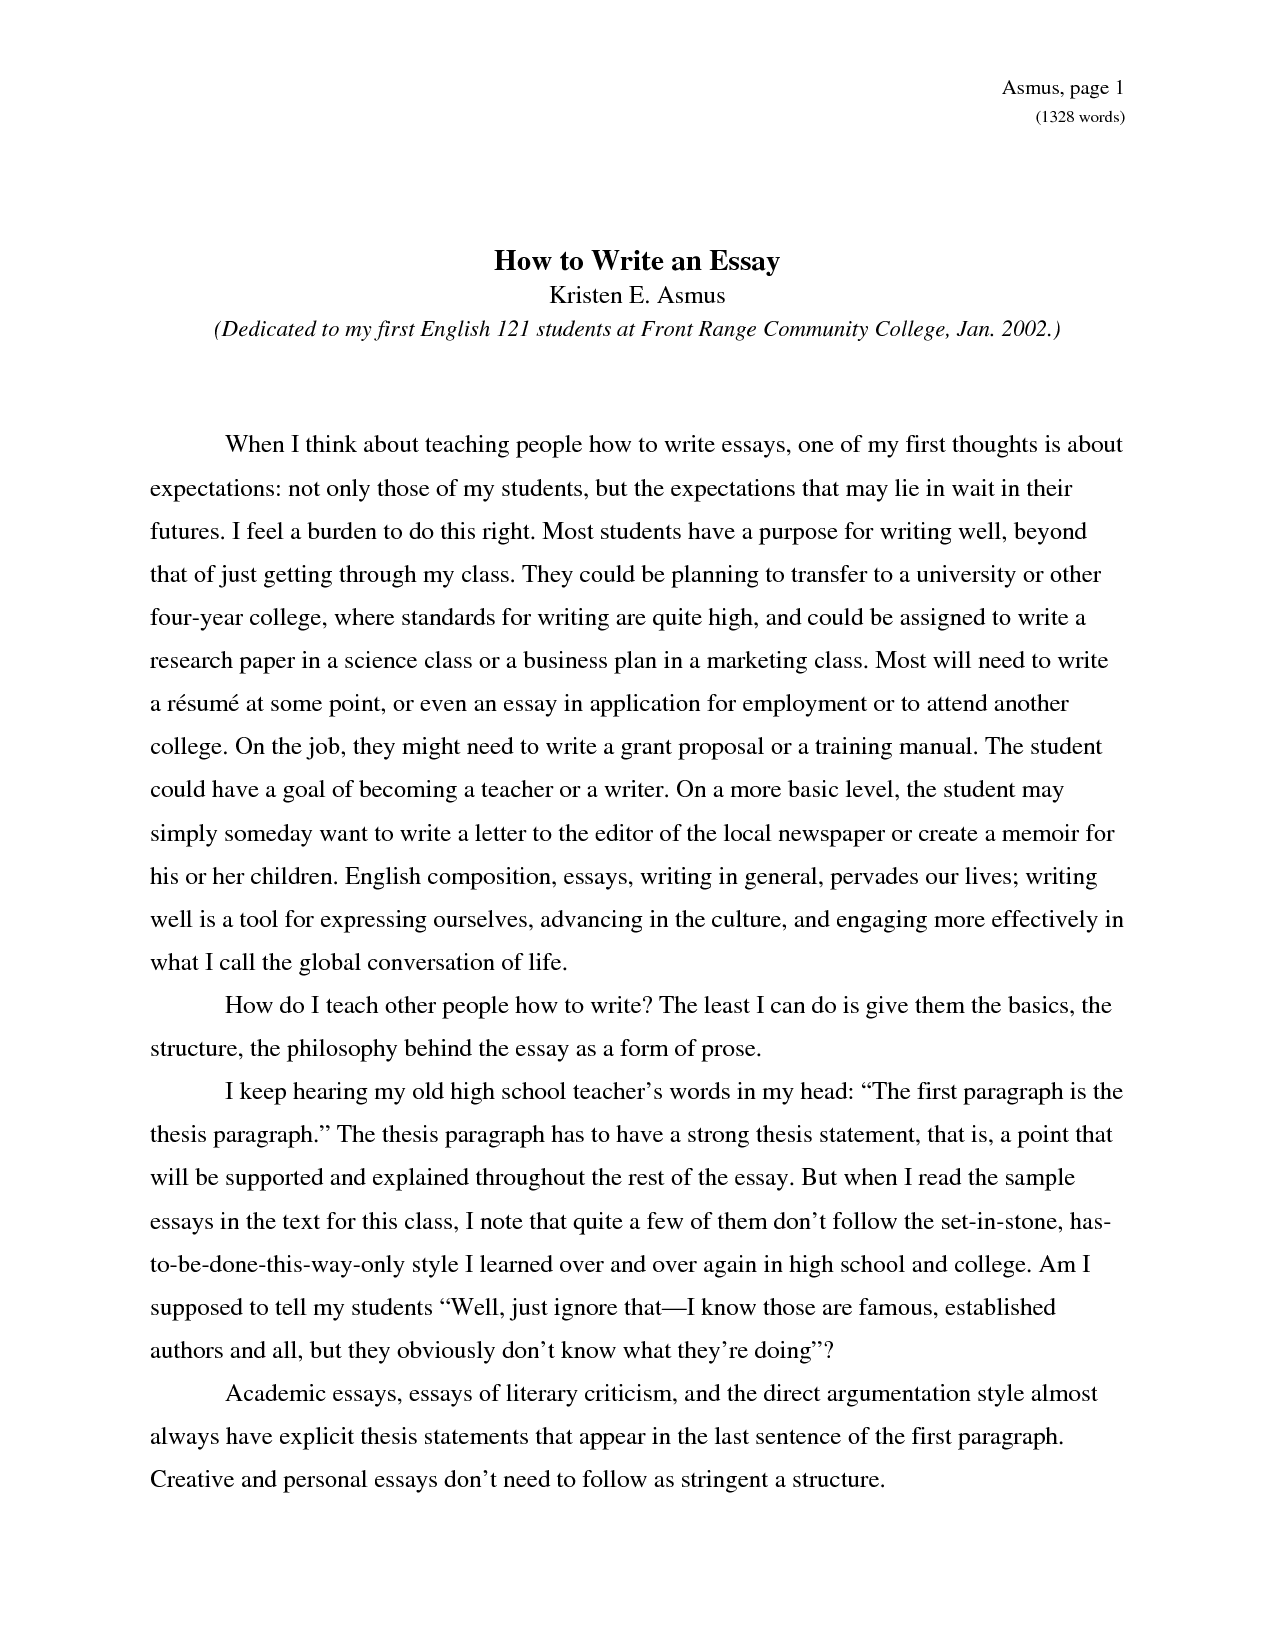 Help write essay your friend